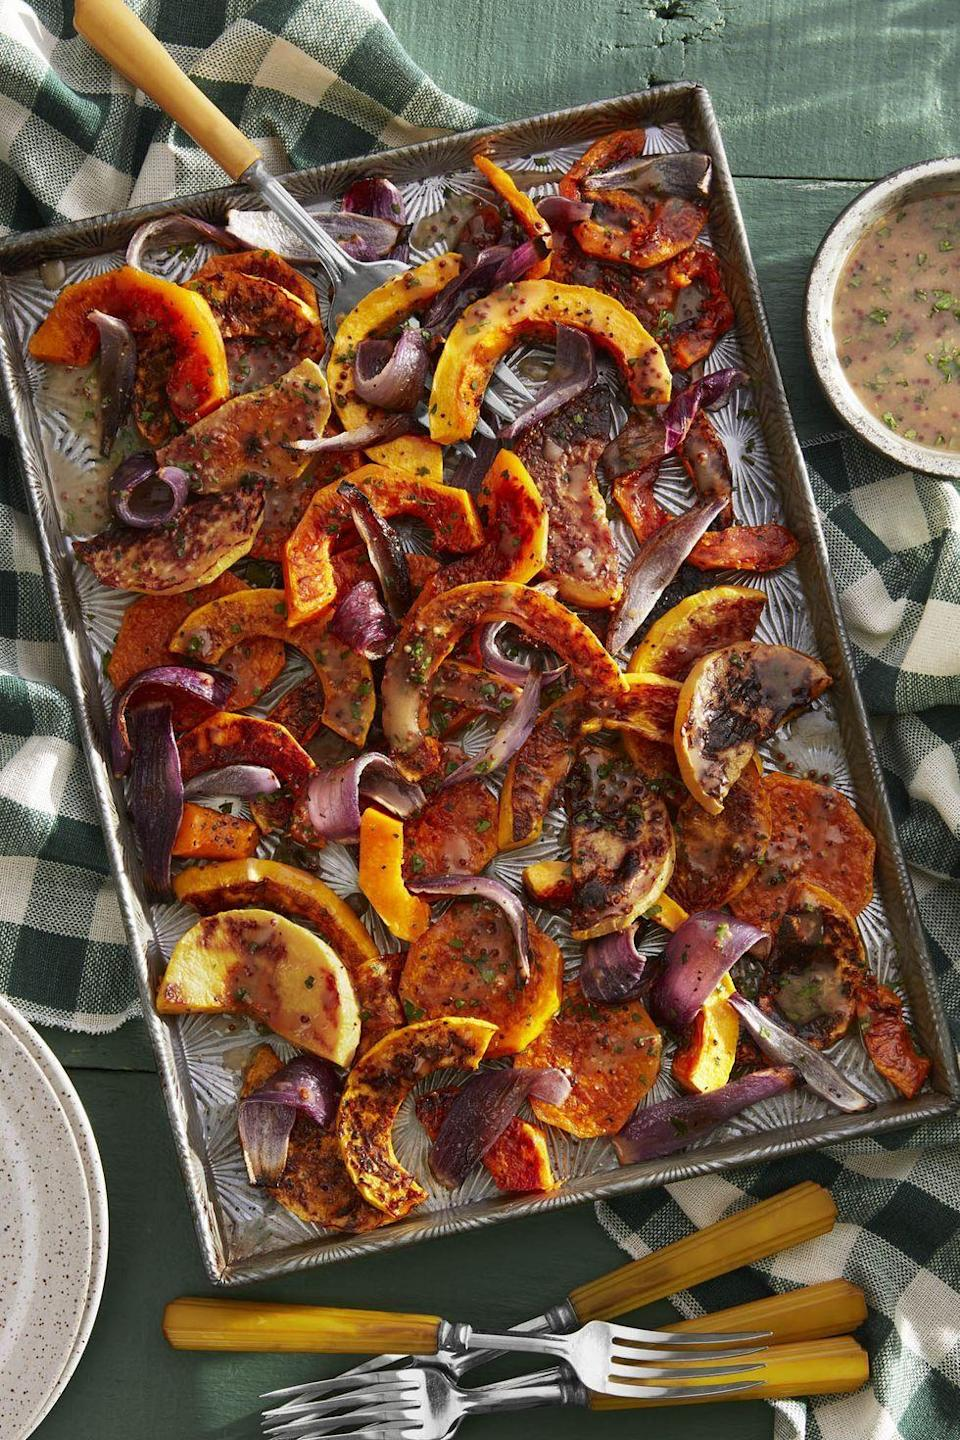 """<p>While once upon a time, vegan Thanksgiving options were scarce, nowadays, the choices are plentiful. Whether you're a vegan, a <a href=""""https://www.countryliving.com/food-drinks/g22546745/vegetarian-thanksgiving/"""" rel=""""nofollow noopener"""" target=""""_blank"""" data-ylk=""""slk:vegetarian"""" class=""""link rapid-noclick-resp"""">vegetarian</a>, or even a meat eater, everyone will find a handful of <a href=""""https://www.countryliving.com/food-drinks/g896/thanksgiving-side-dishes/"""" rel=""""nofollow noopener"""" target=""""_blank"""" data-ylk=""""slk:side dishes"""" class=""""link rapid-noclick-resp"""">side dishes</a>, <a href=""""https://www.countryliving.com/food-drinks/g1384/thanksgiving-desserts/"""" rel=""""nofollow noopener"""" target=""""_blank"""" data-ylk=""""slk:sweet treats"""" class=""""link rapid-noclick-resp"""">sweet treats</a>, and entrées on this list to enjoy. </p>"""